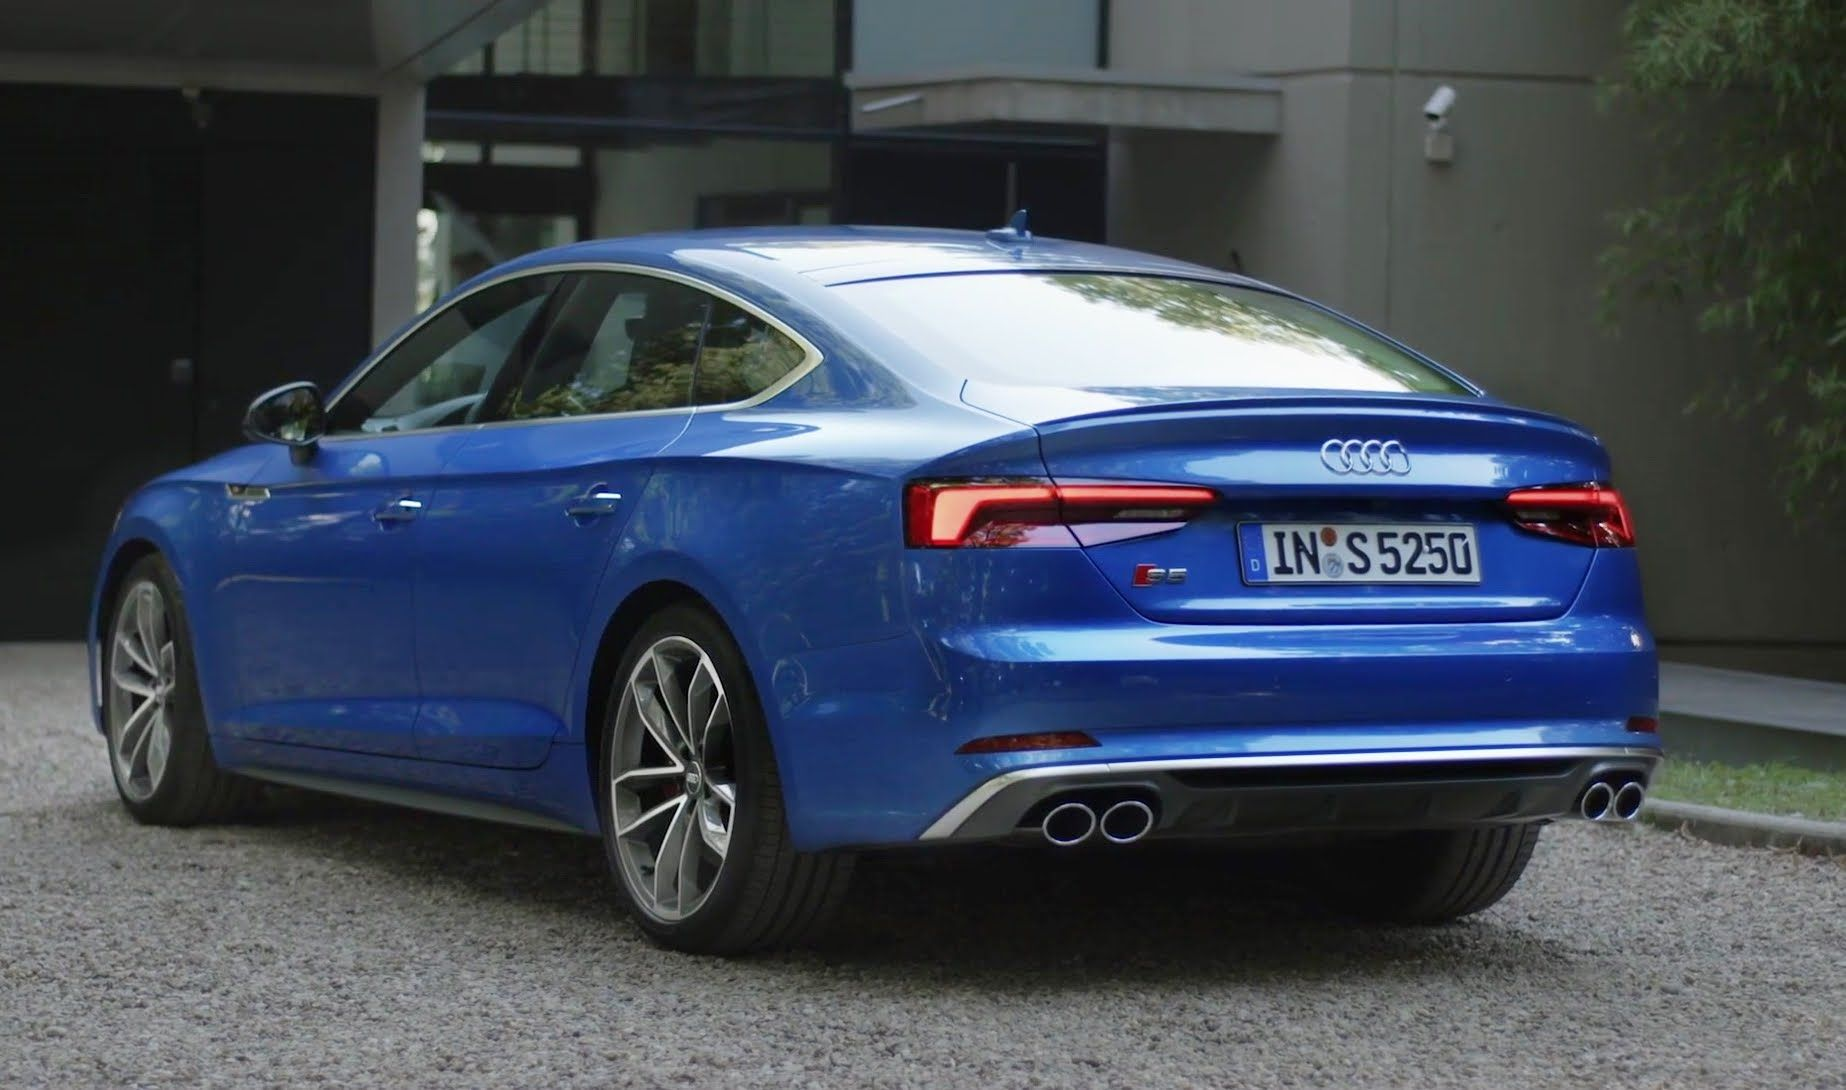 2017 Audi S5 354hp Perfect Coupe Video Items Gadgets And